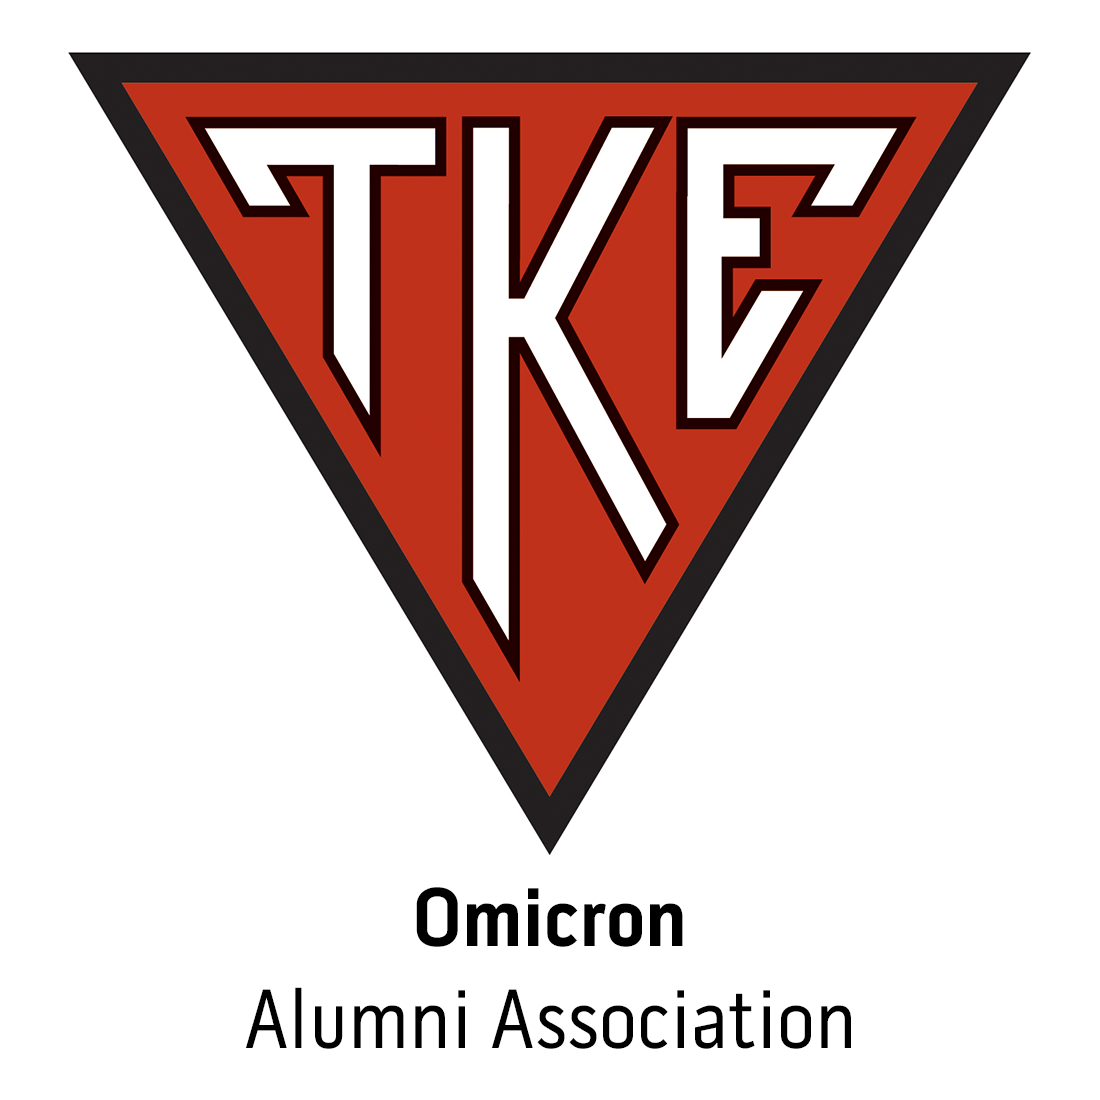 Omicron Alumni Association for The Ohio State University